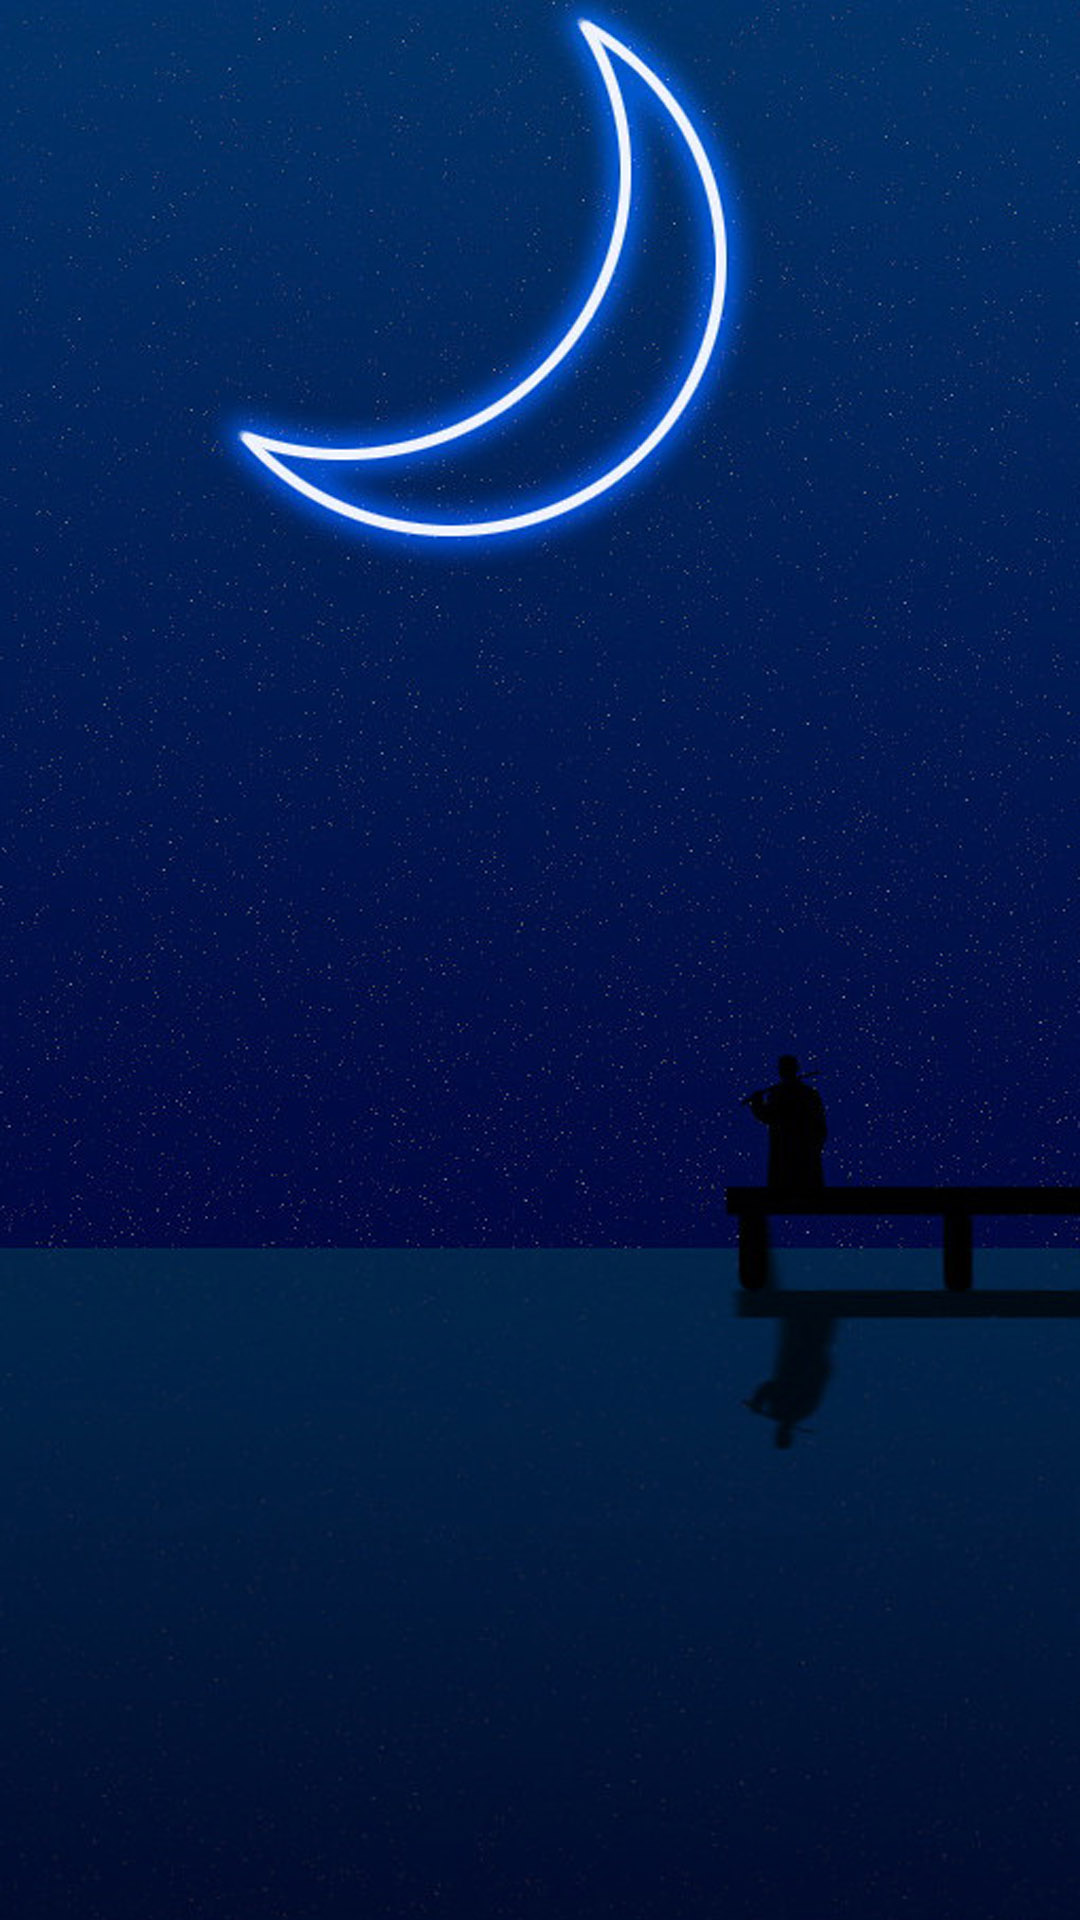 phone wallpaper hd night - photo #38